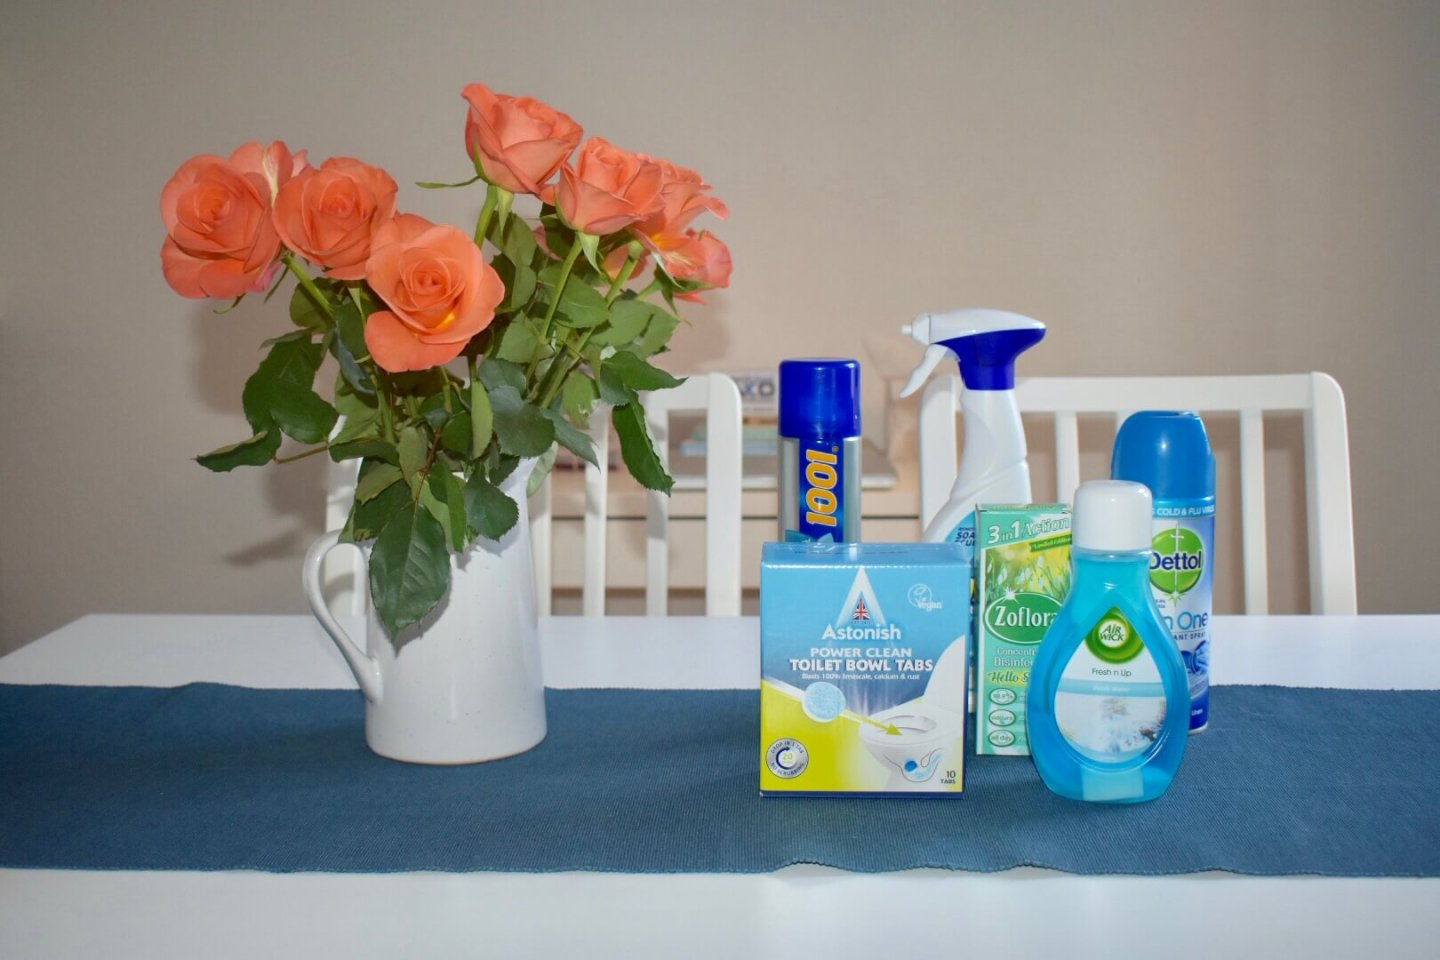 Top 10 Cleaning Products and How I Use Them